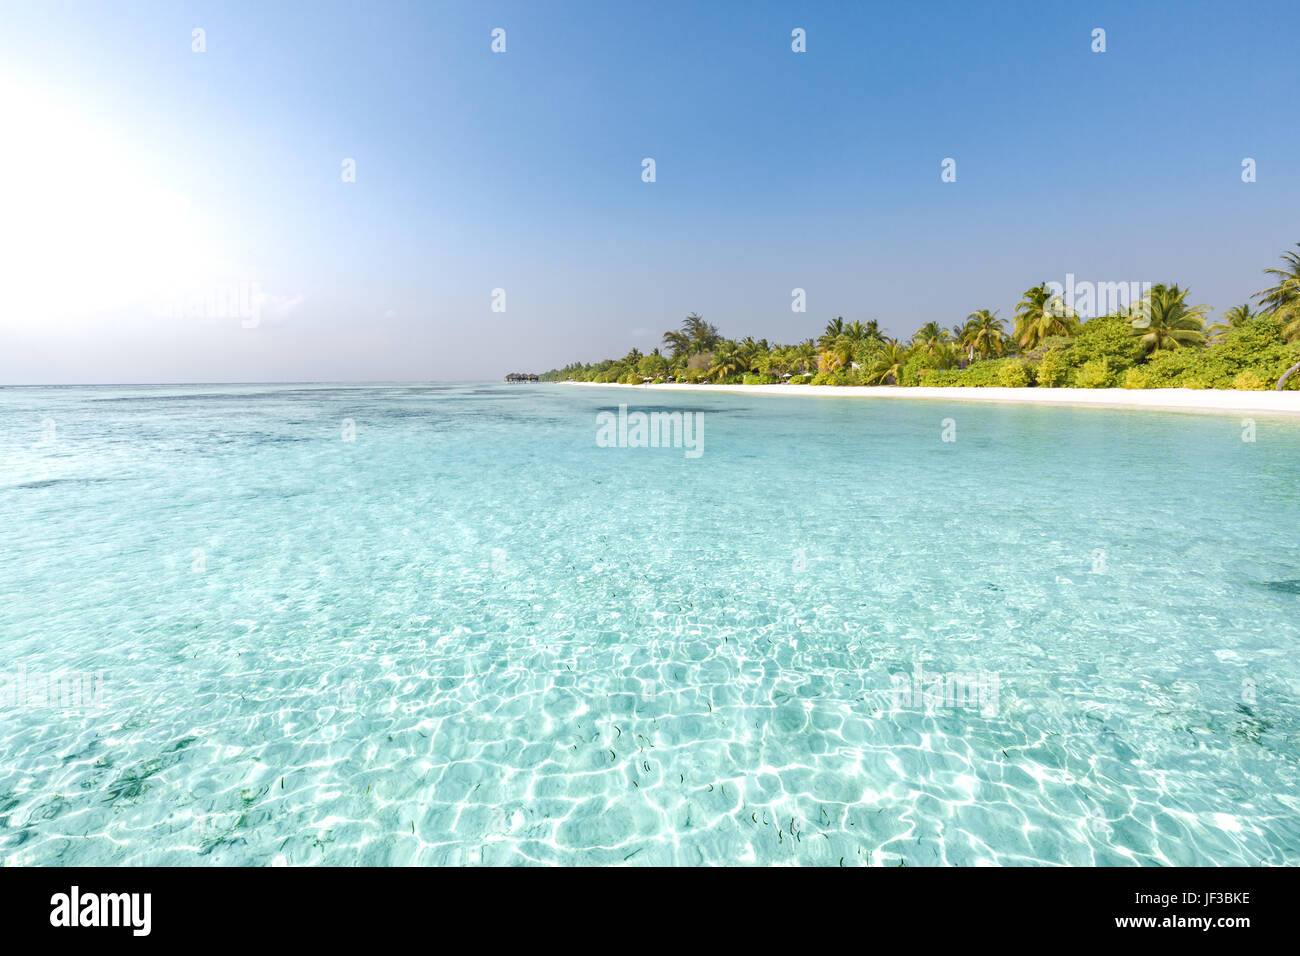 Summer vacation and holiday concept. Beach scene and tranquil tropical landscape - Stock Image